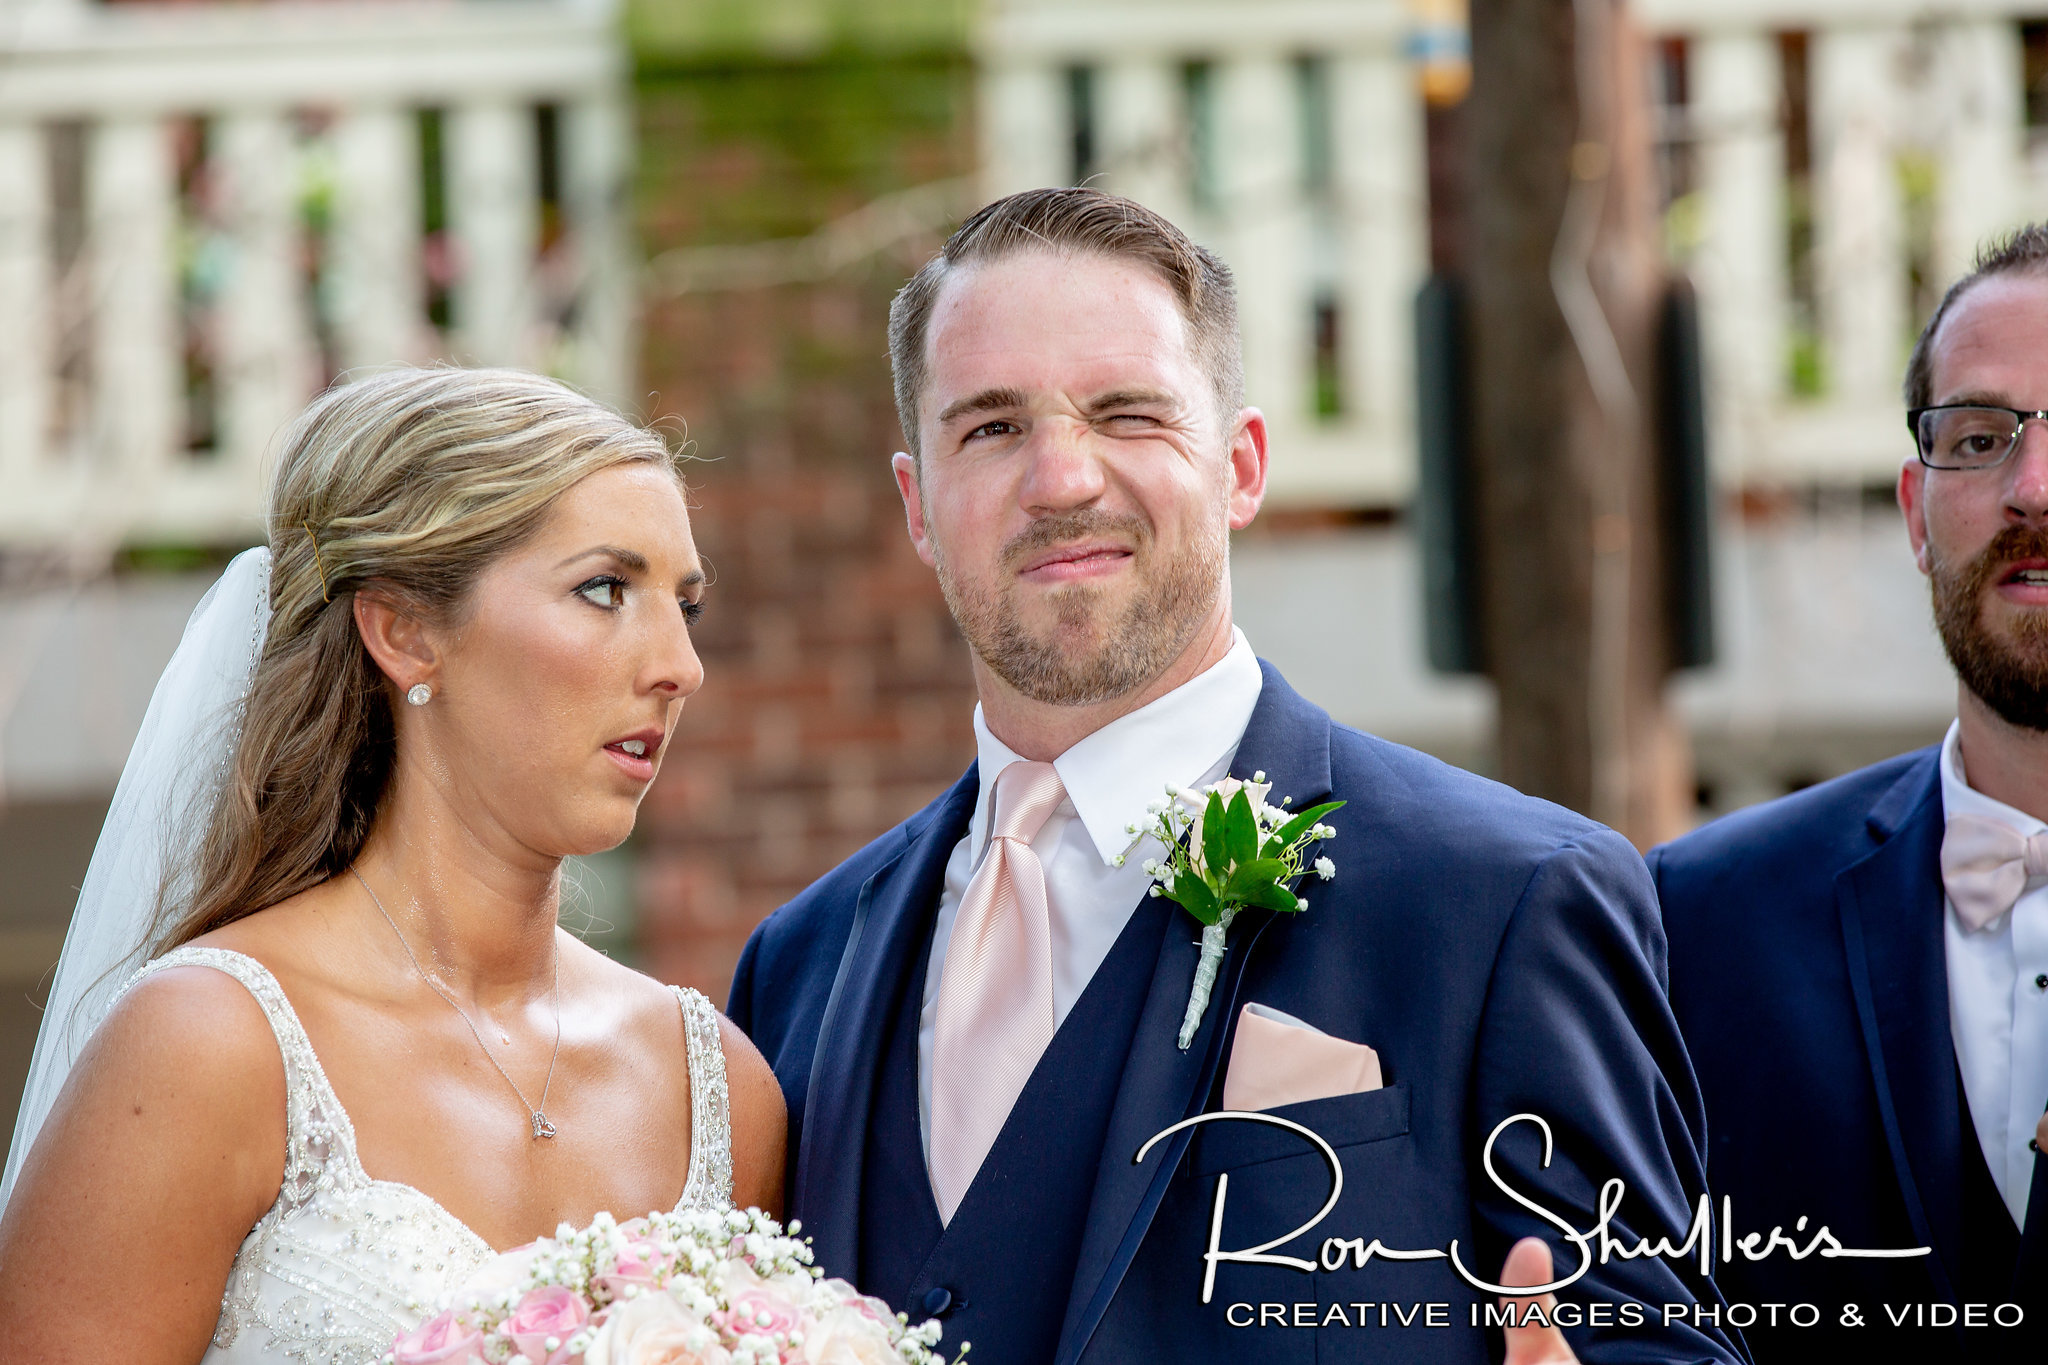 That face you make when you're over the heat, and your new husband's shenanigans.